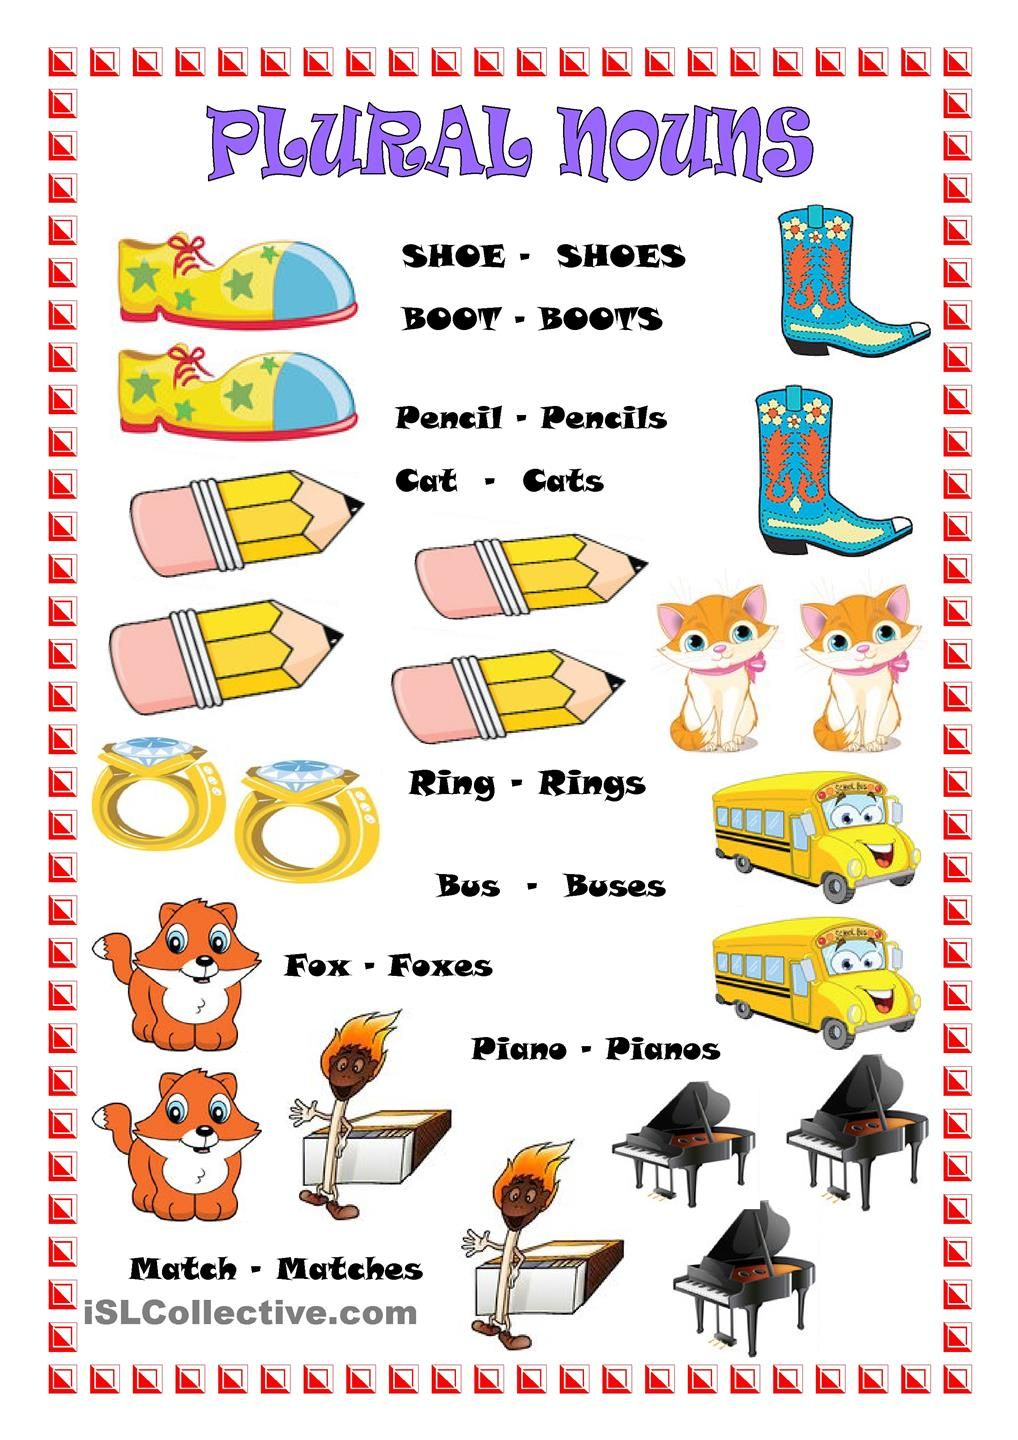 Workbooks making words plural worksheets : PLURAL NOUNS | school | Pinterest | Plural nouns, Plural nouns ...